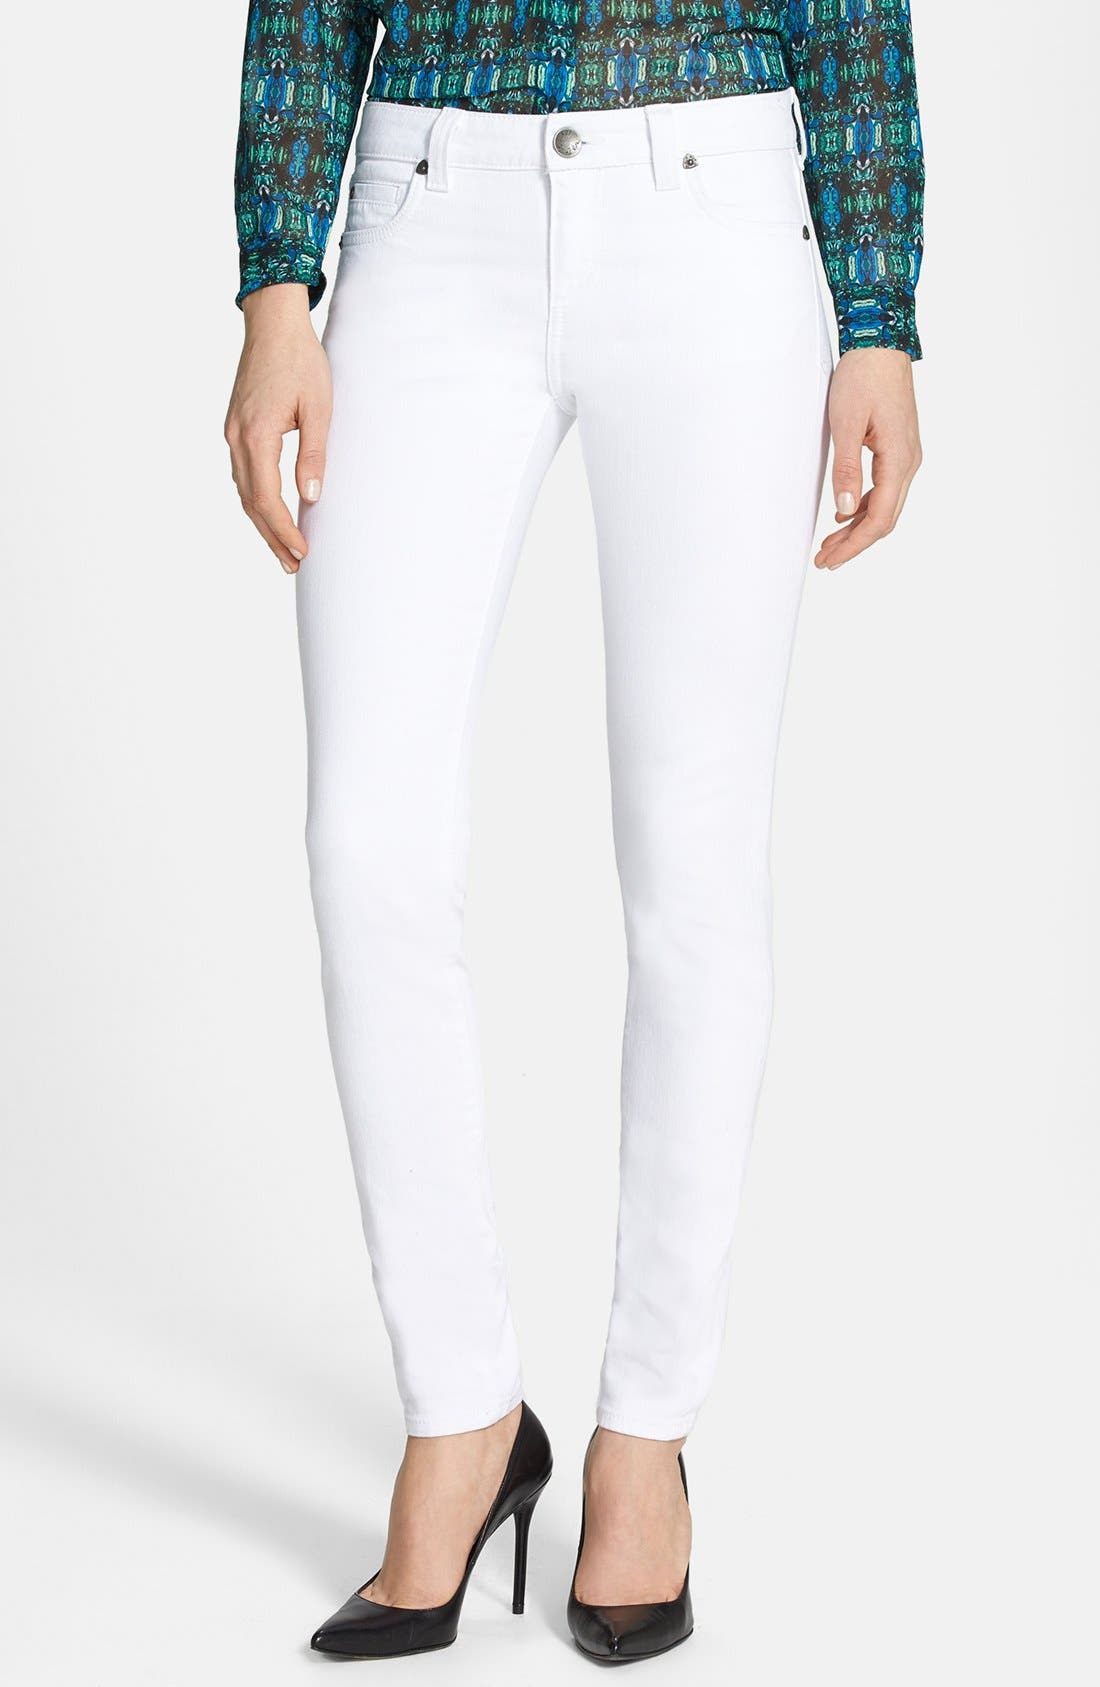 Main Image - KUT from the Kloth 'Mia' Skinny Jeans (White)